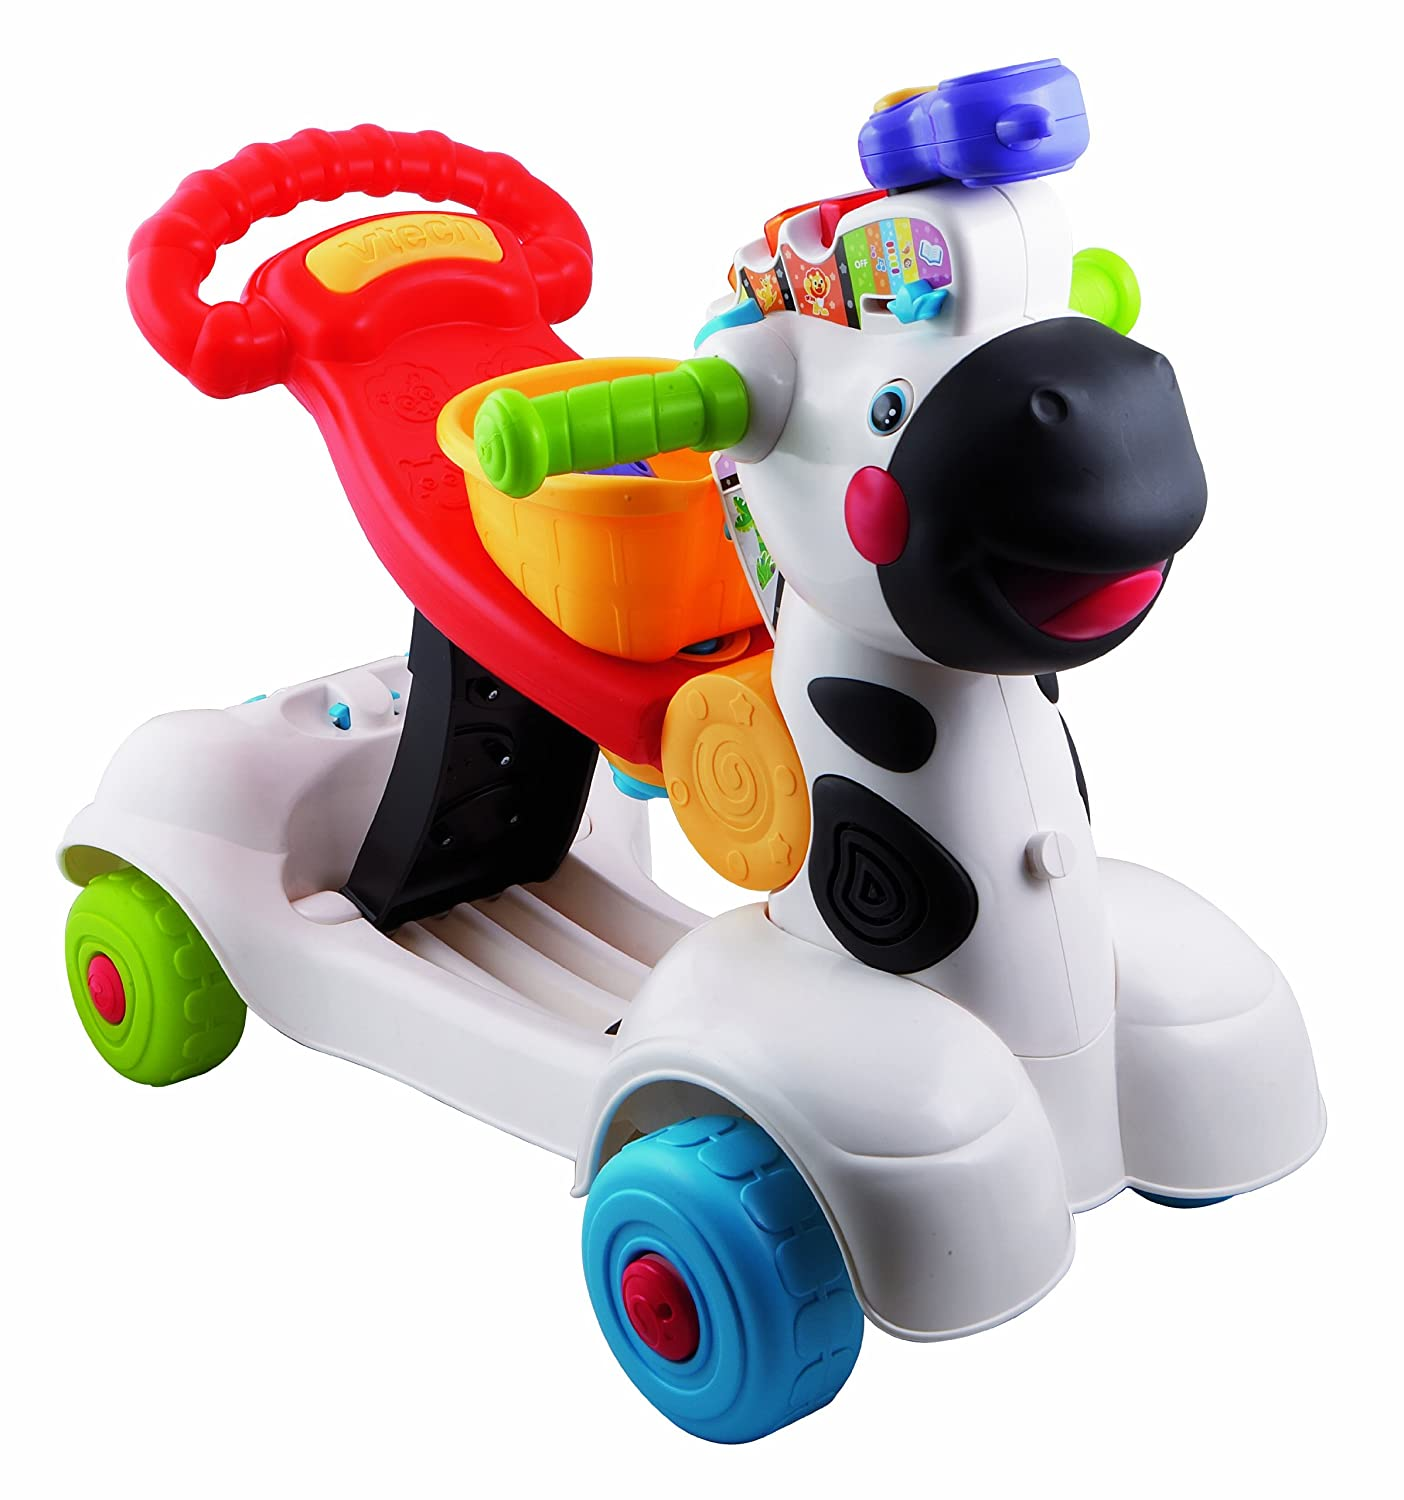 VTech Infantil - Cebra Scooter 80-112622: Amazon.es ...